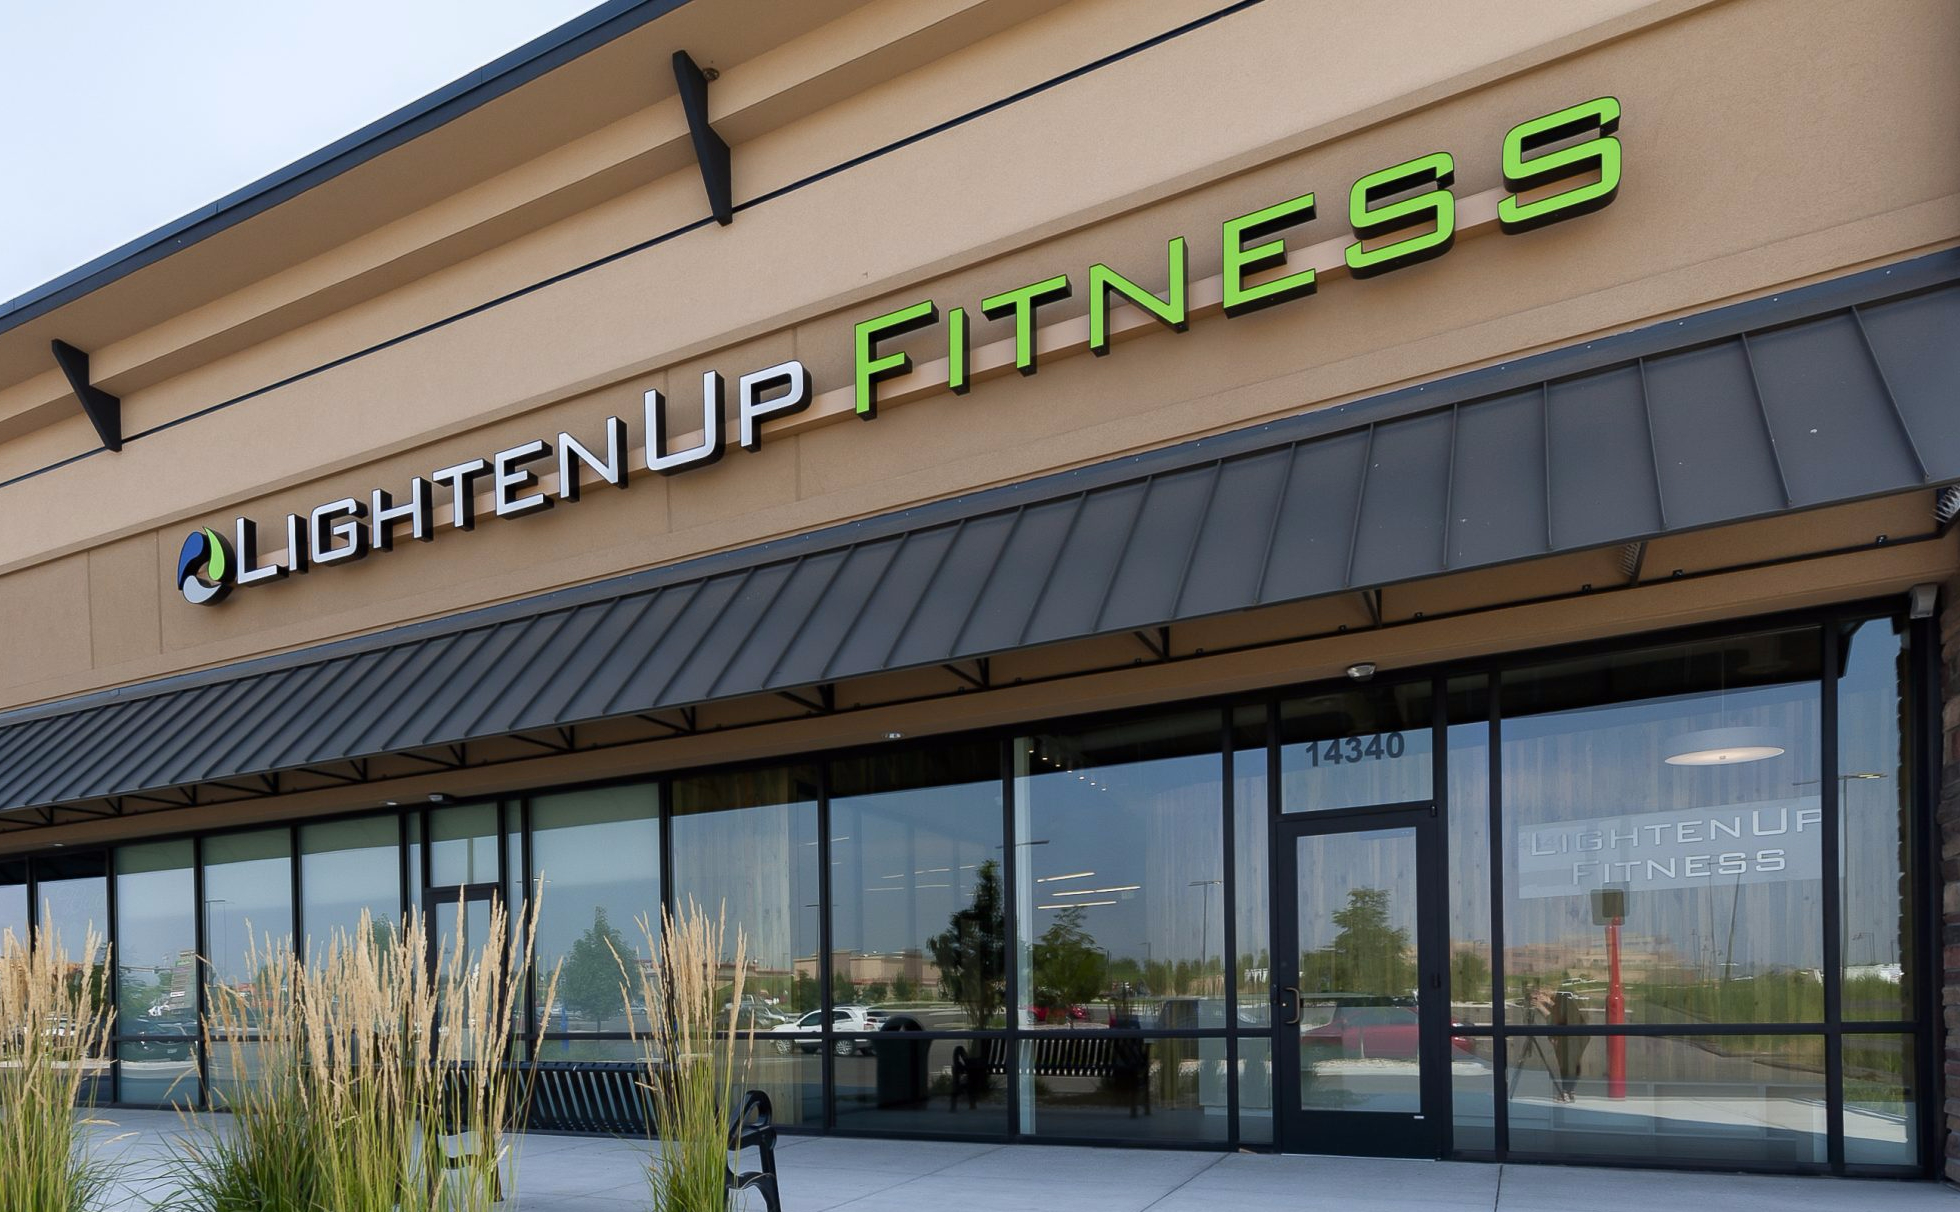 LightenUp Fitness